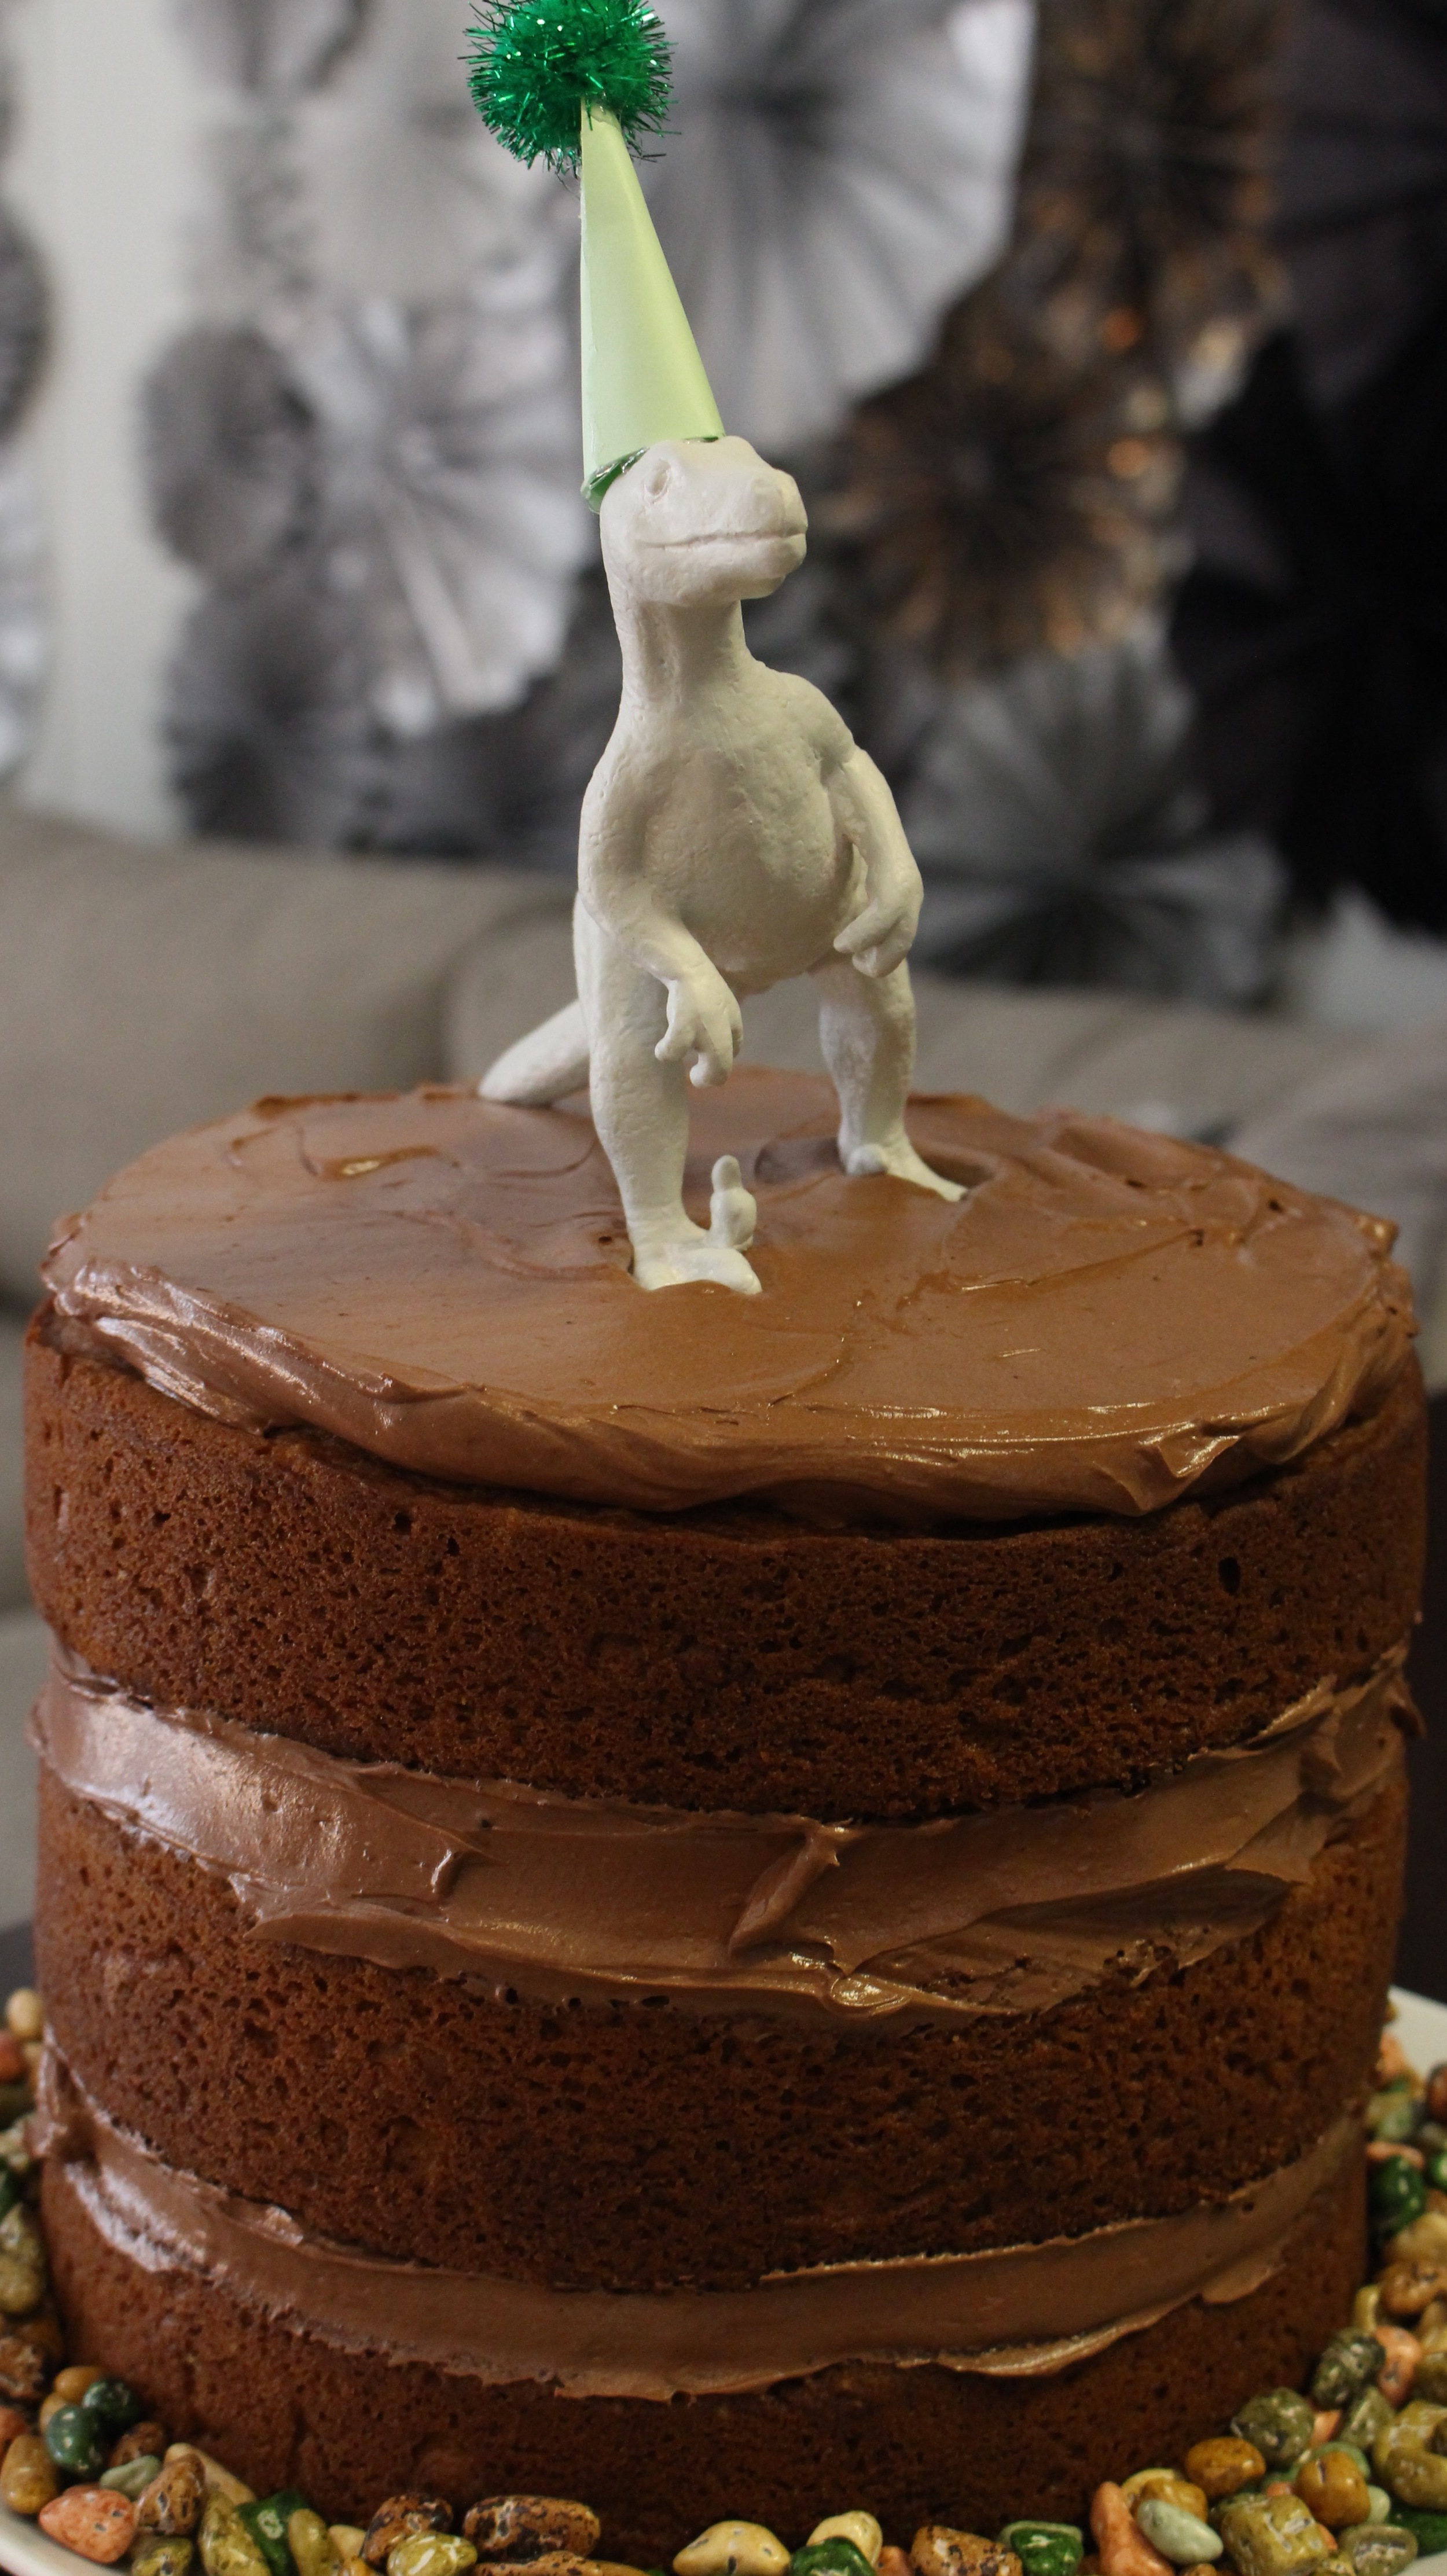 Cake! Don't forget the chocolate rocks underneath. #Moderdino #dinosaurs #firstbirthday #dinobirthdayparty #kidsbirthday #meandthemoose